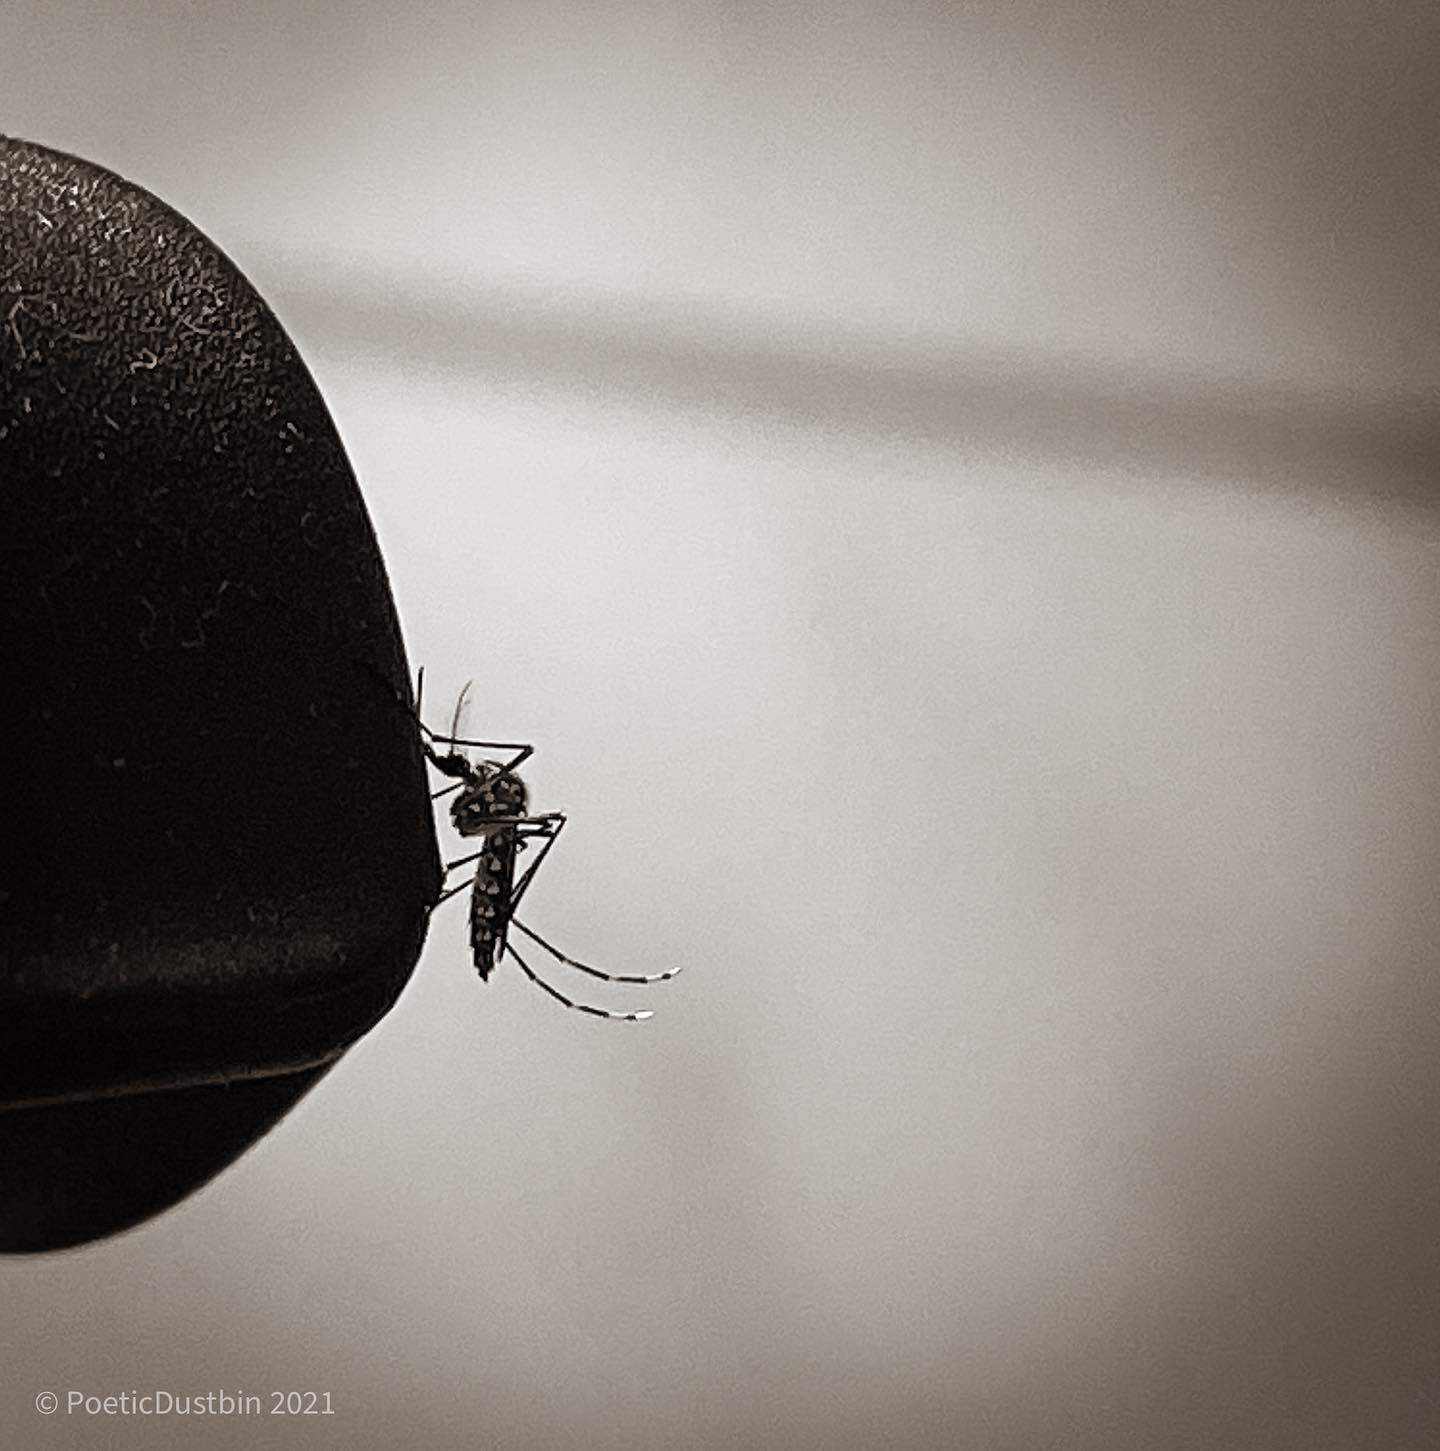 We are far more dangerous than any mosquito